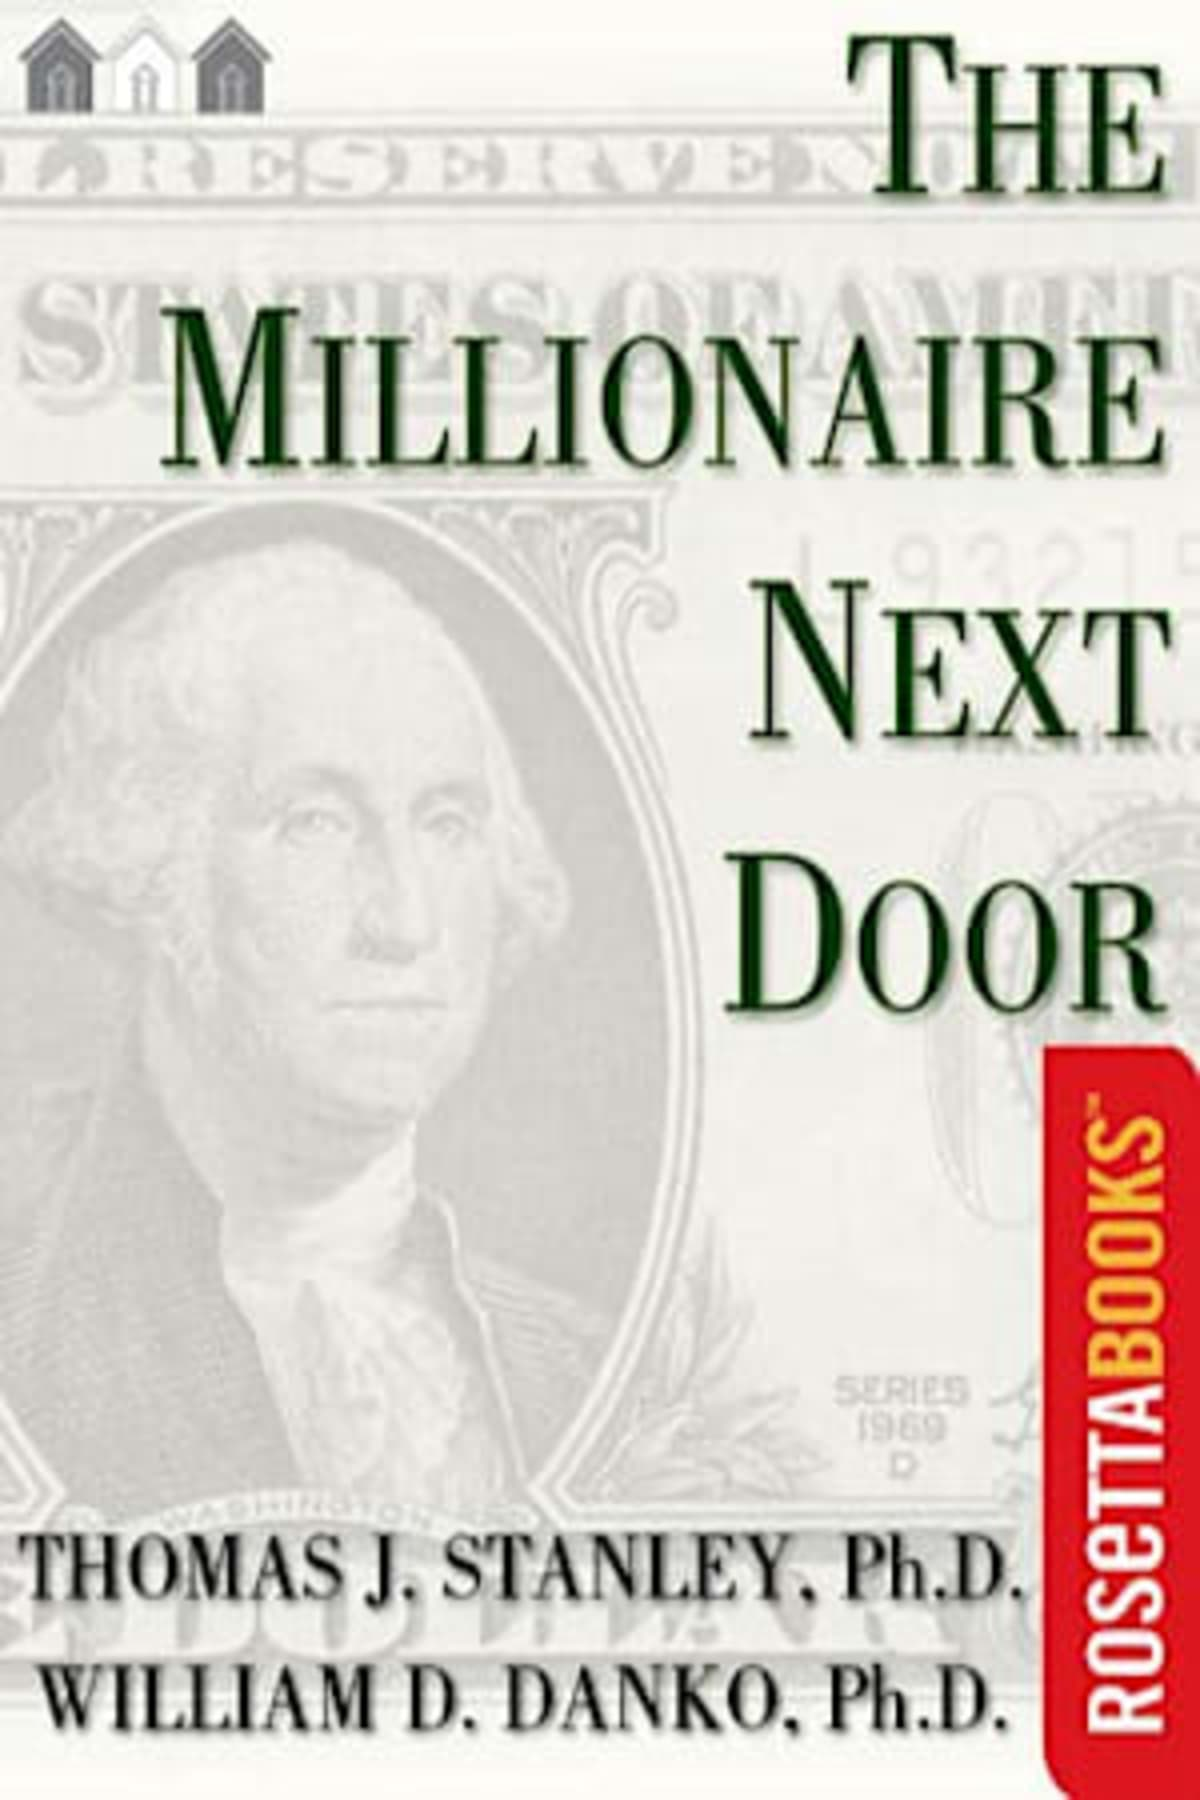 Book cover of The Millionaire Next Door by Thomas J. Stanley and William D. Danko